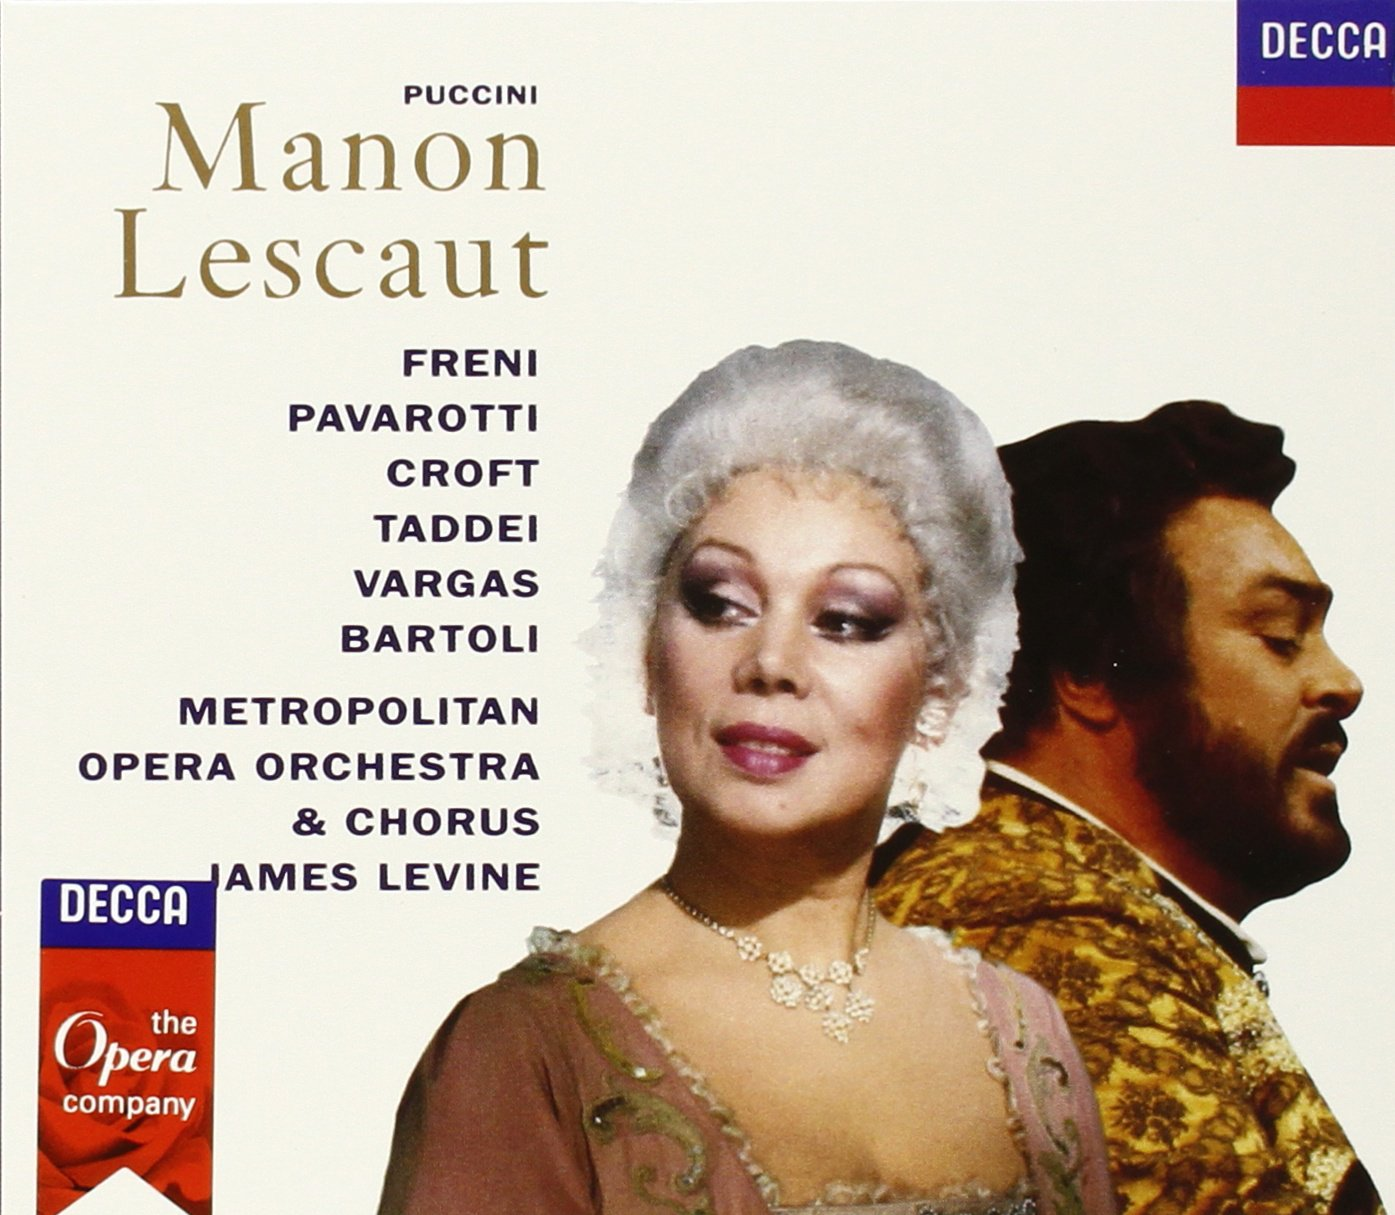 James Levine. Puccini: Manon Lescaut (2 CD) ролики quattro freni отзывы